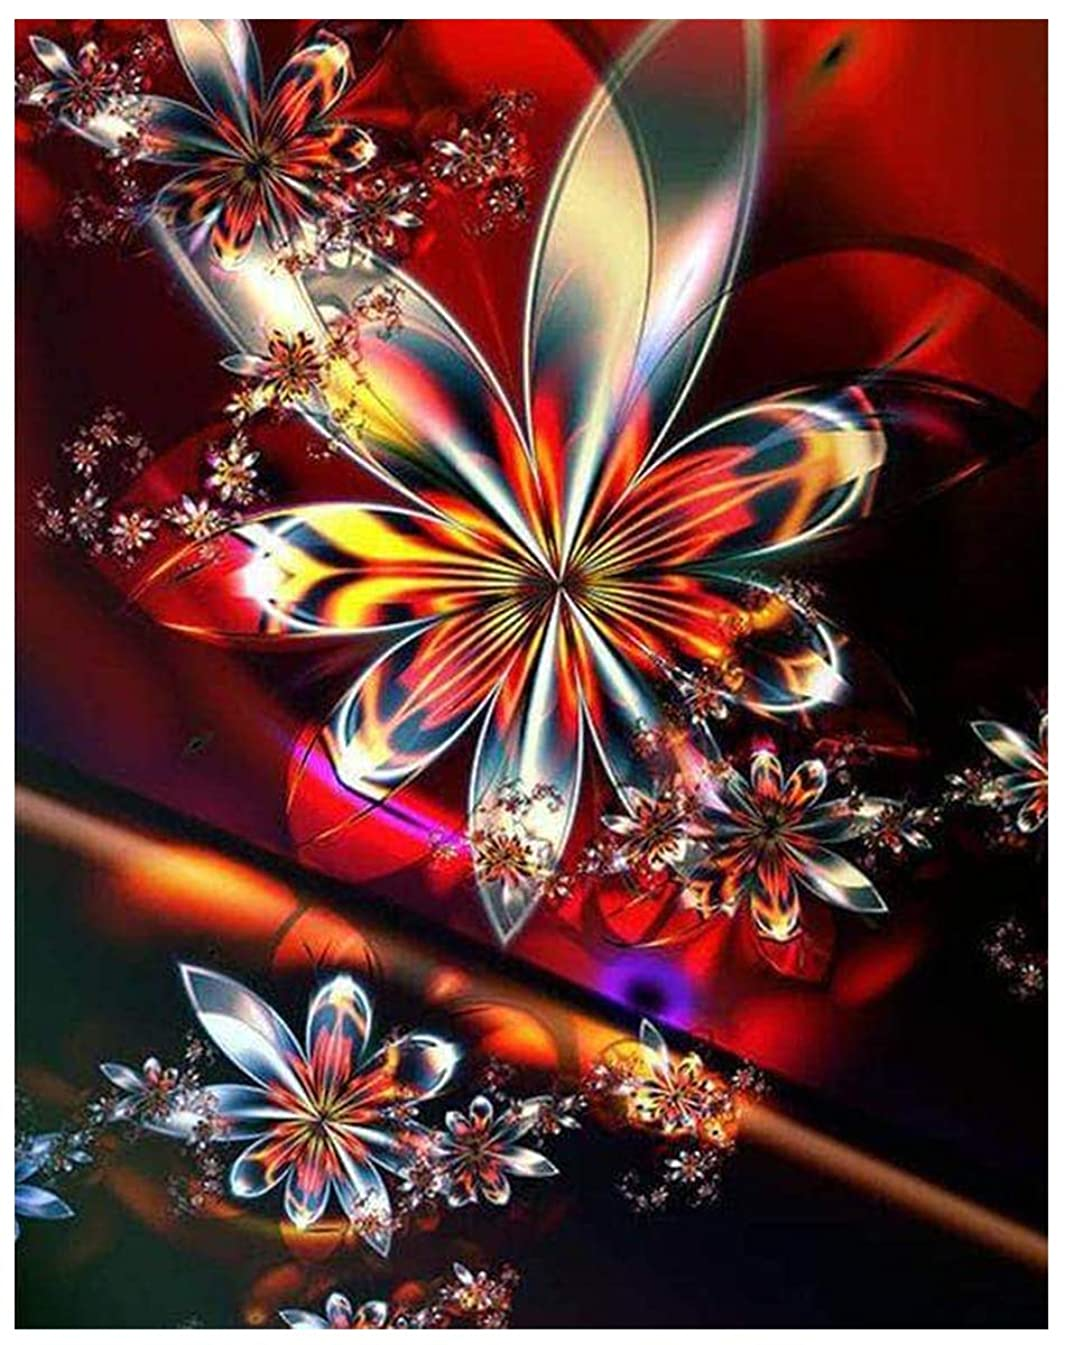 Blxecky DIY 5D Diamond Painting by Number Kit for Adult, Full Drill Diamond Embroidery Dotz Kit Home Wall Decor-Flower(30X40CM/12X16inch)